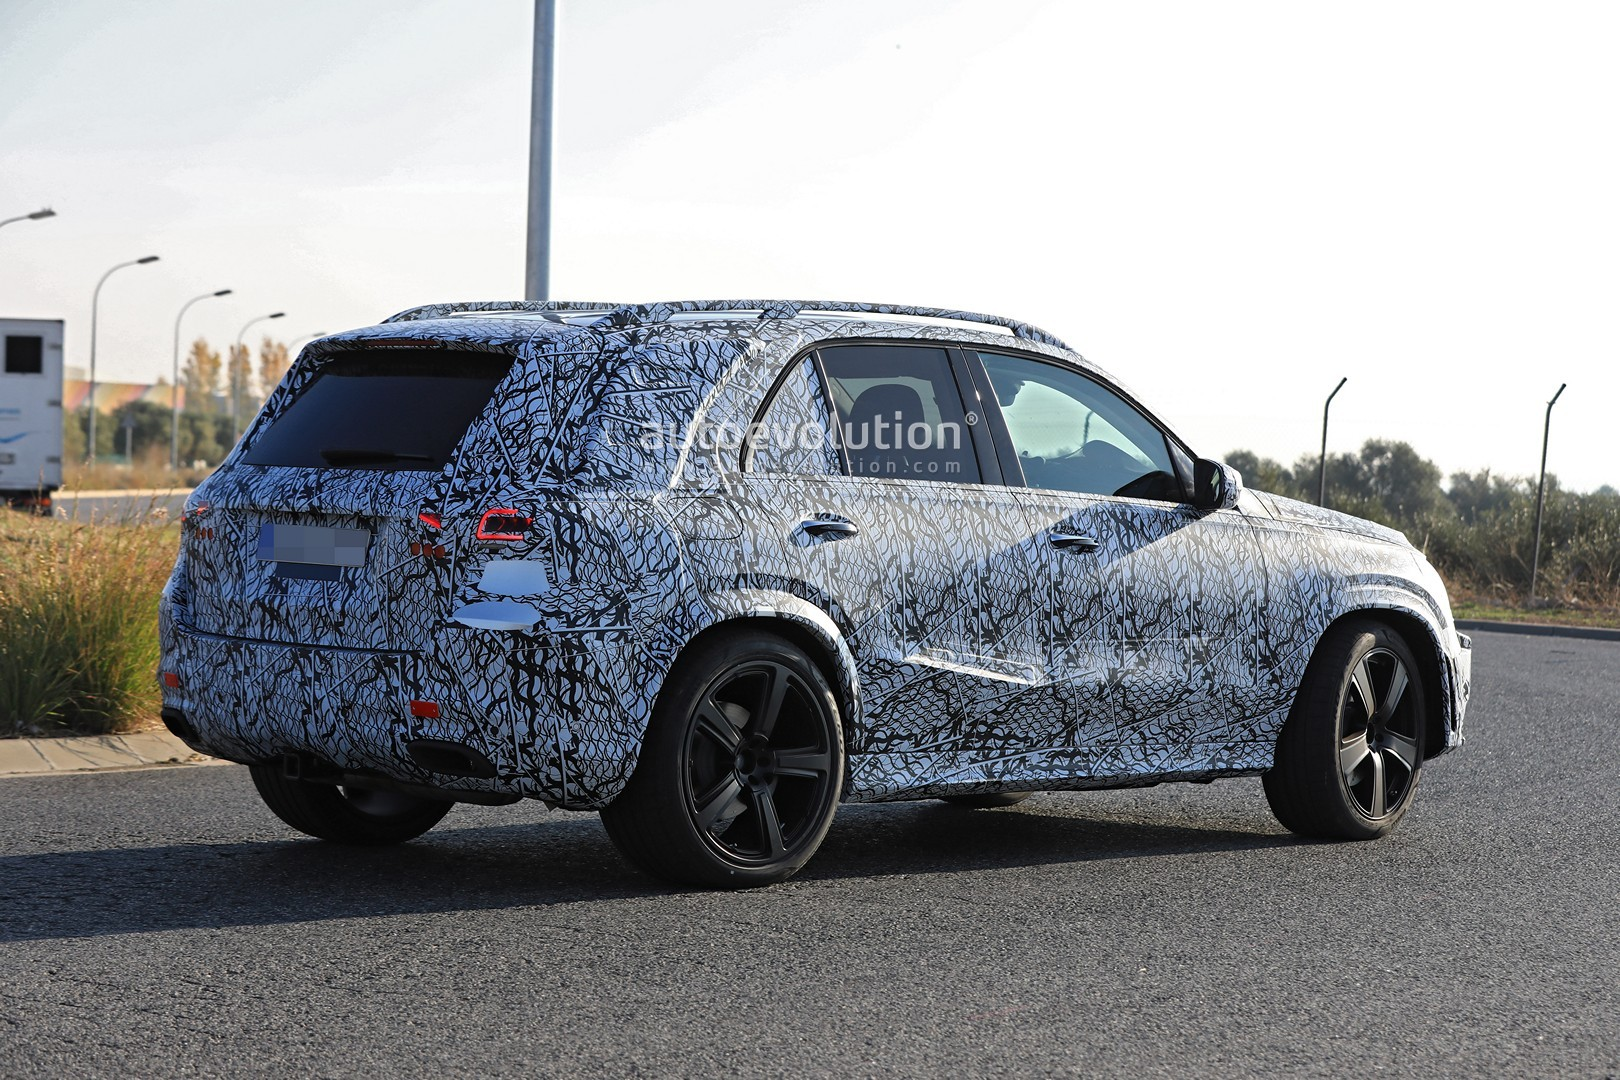 2019 Mercedes Benz Gle And Gls Spied Testing Together In